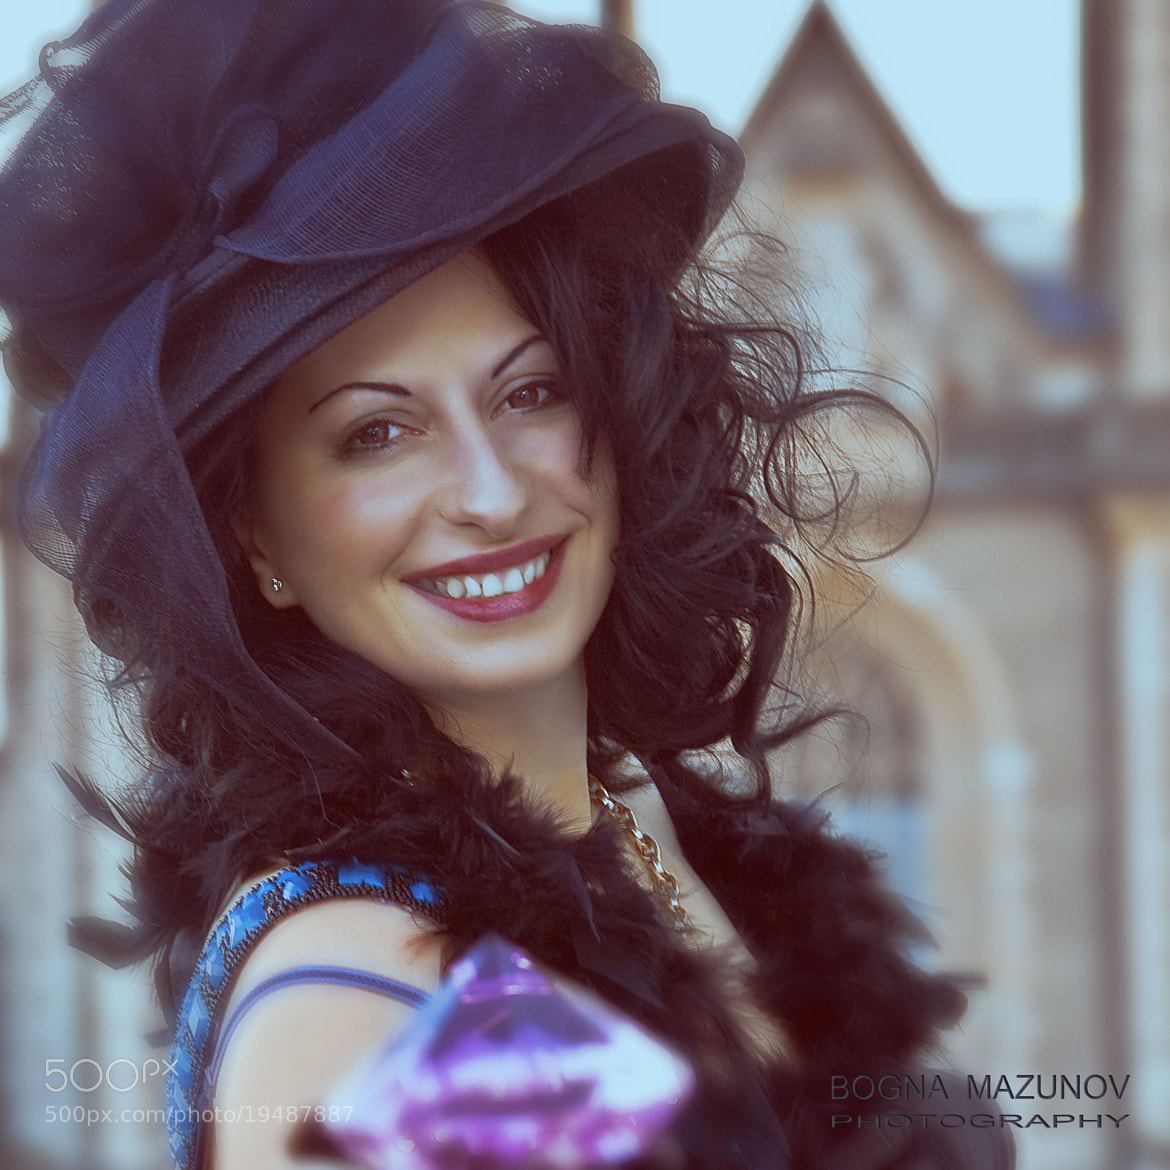 Photograph Eleni by Bogna Mazunov on 500px